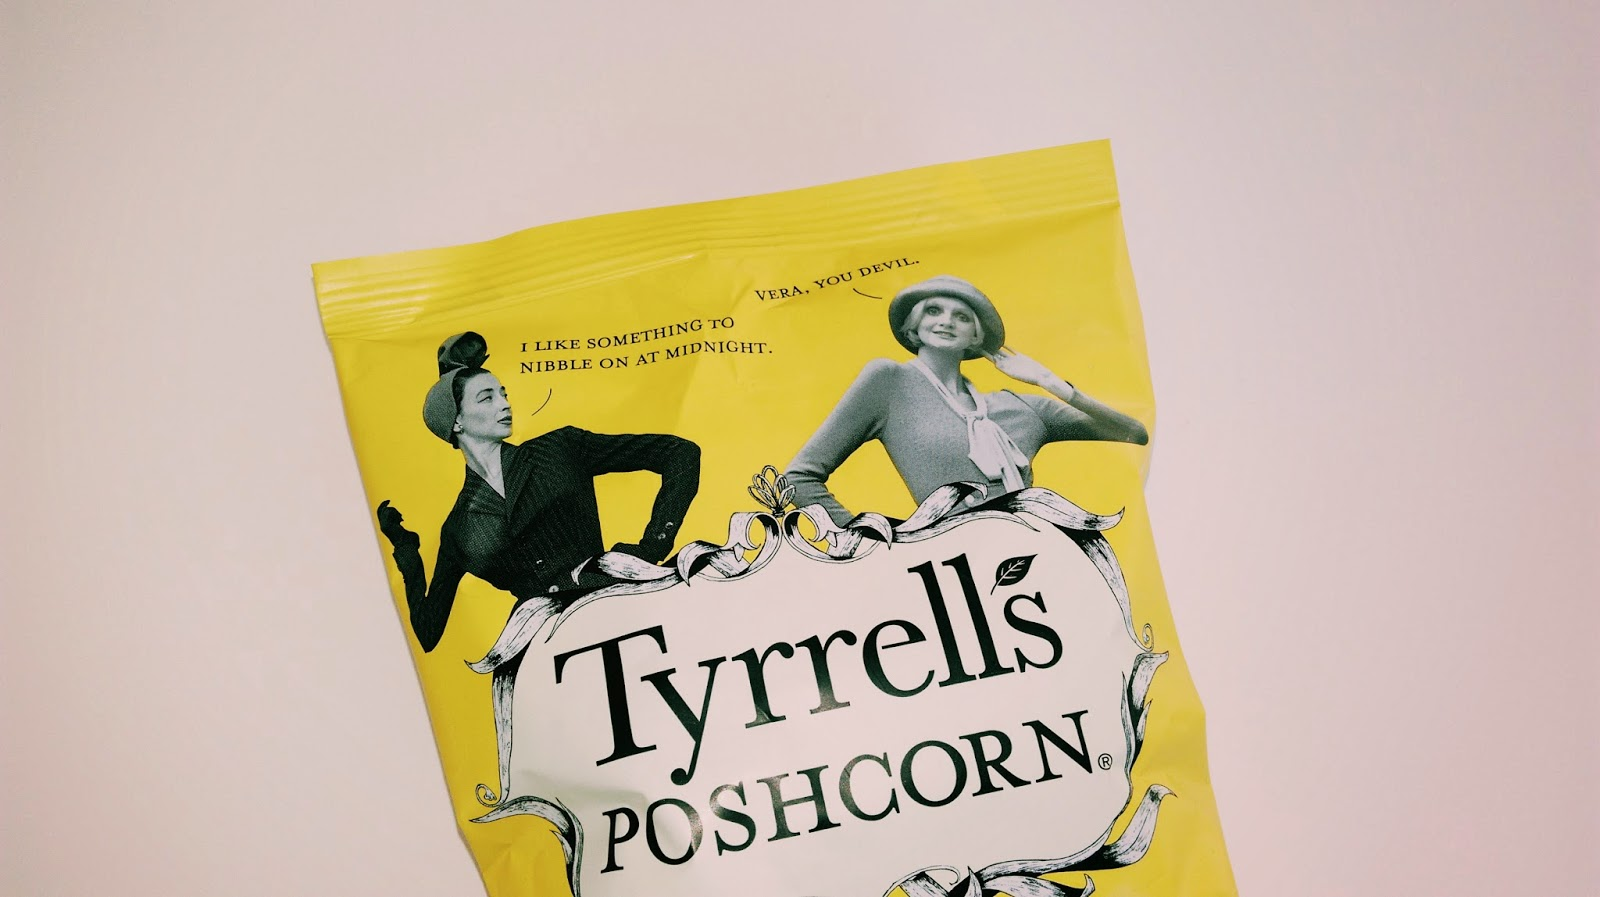 PoshCorn By @Tyrrells Review